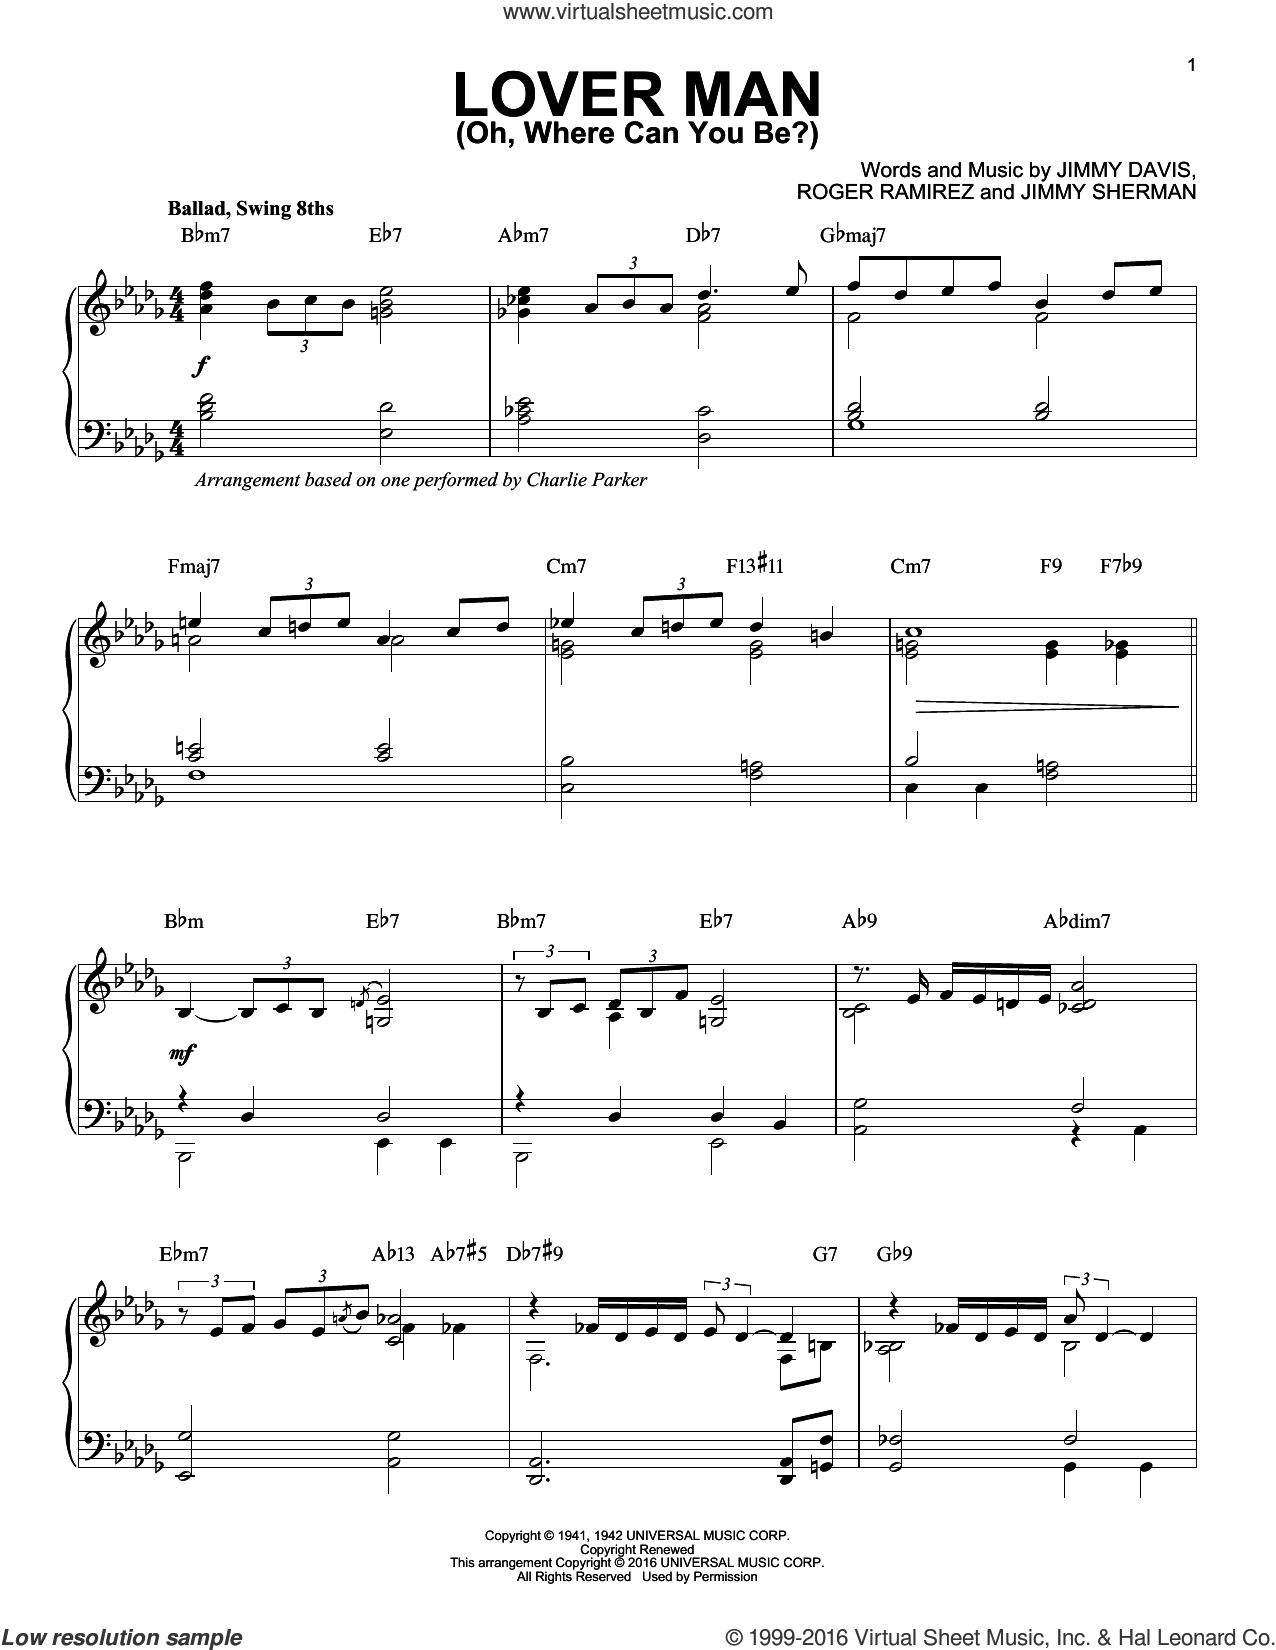 Lover Man (Oh, Where Can You Be?) sheet music for piano solo by Charlie Parker, Billie Holiday, Jimmie Davis, Jimmy Sherman and Roger Ramirez, intermediate skill level